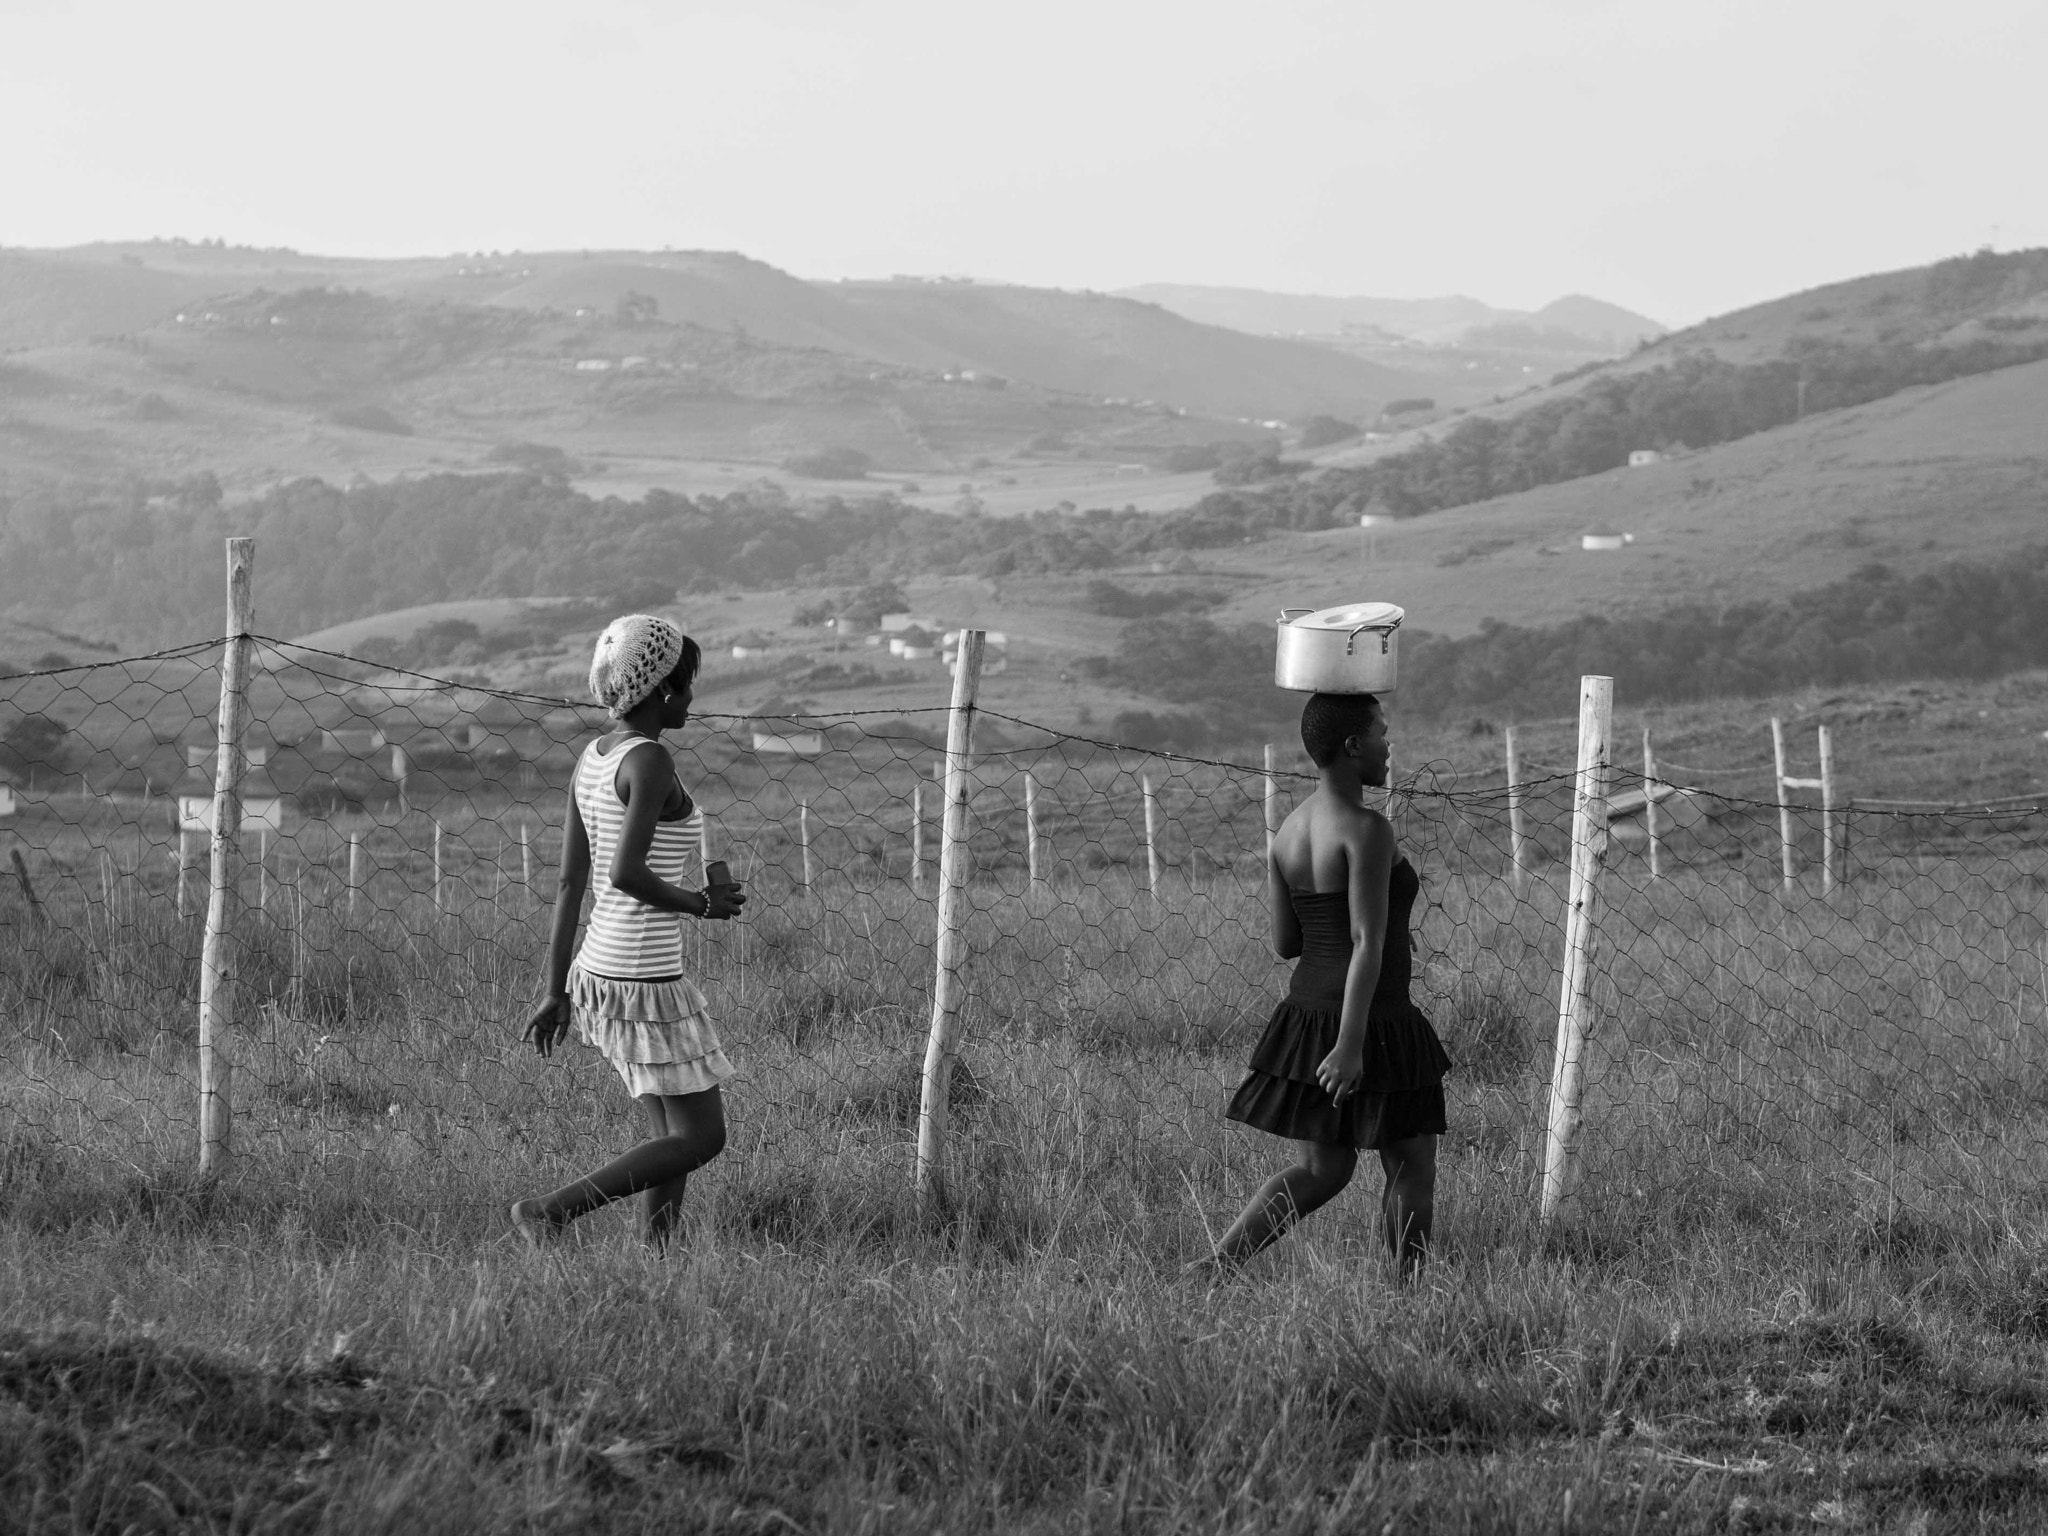 Photograph transkei life // eastern cape, south africa by Pamela Ross on 500px